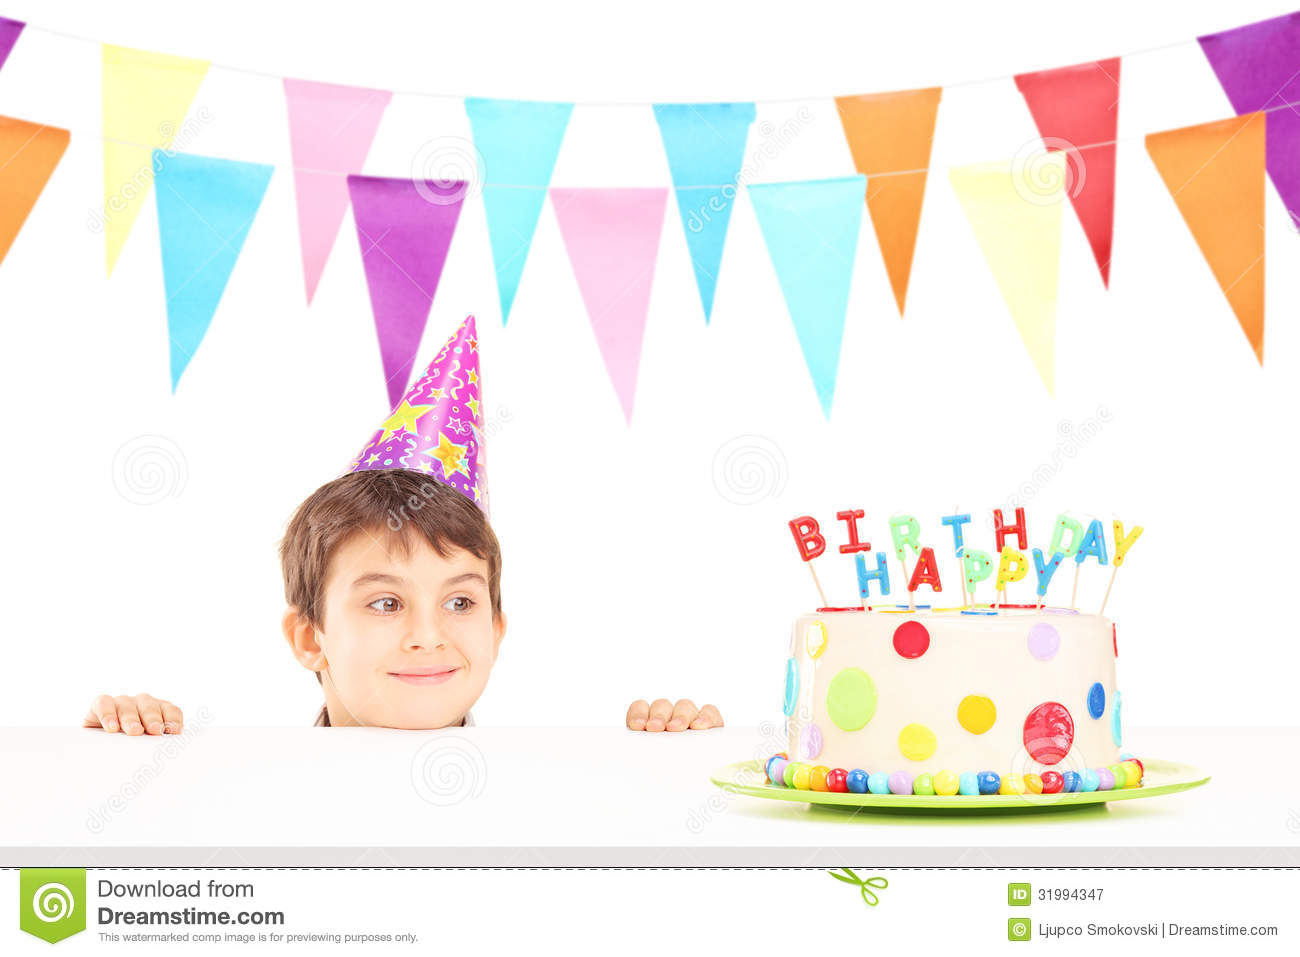 Boy Birthday Background Design – images free download